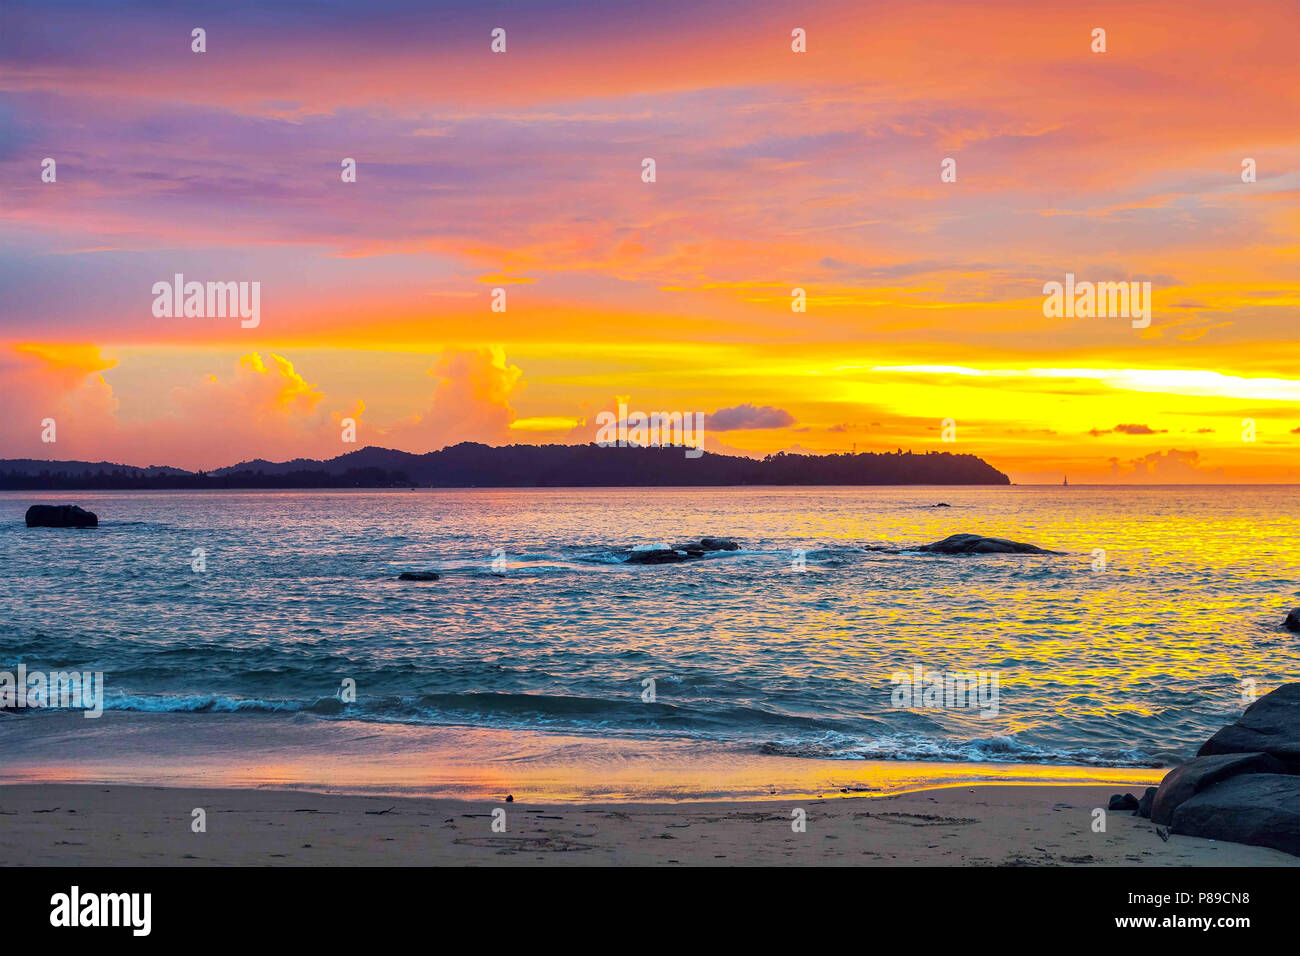 Colorful sunset over the sea in Thailand. - Stock Image